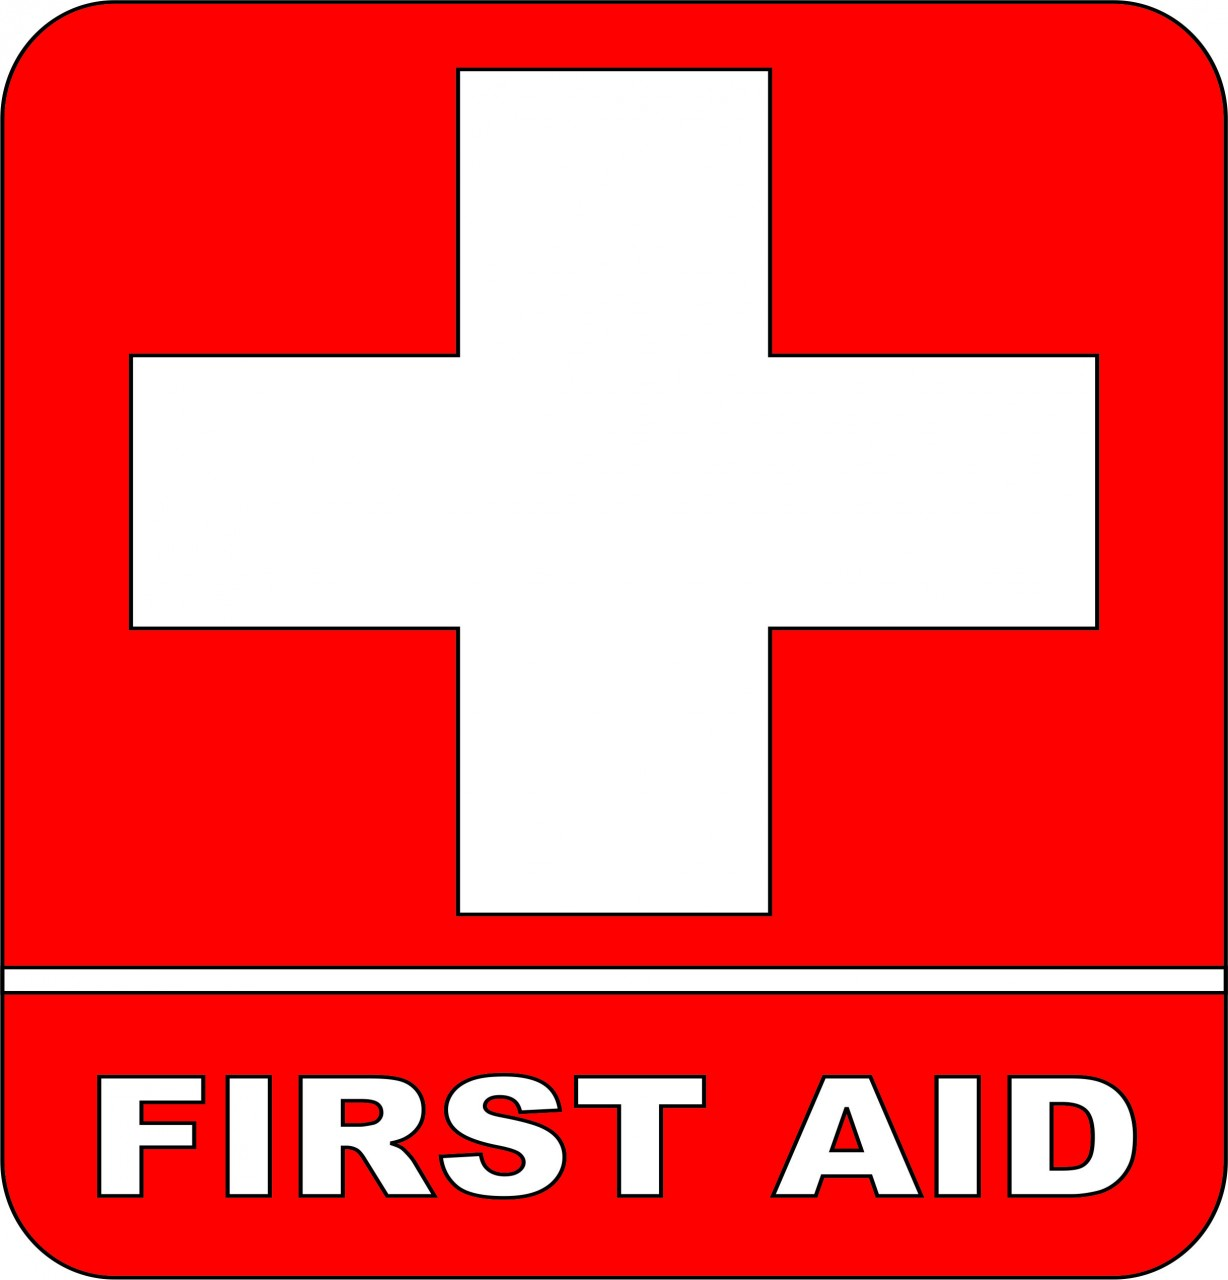 First aid course lifesaving